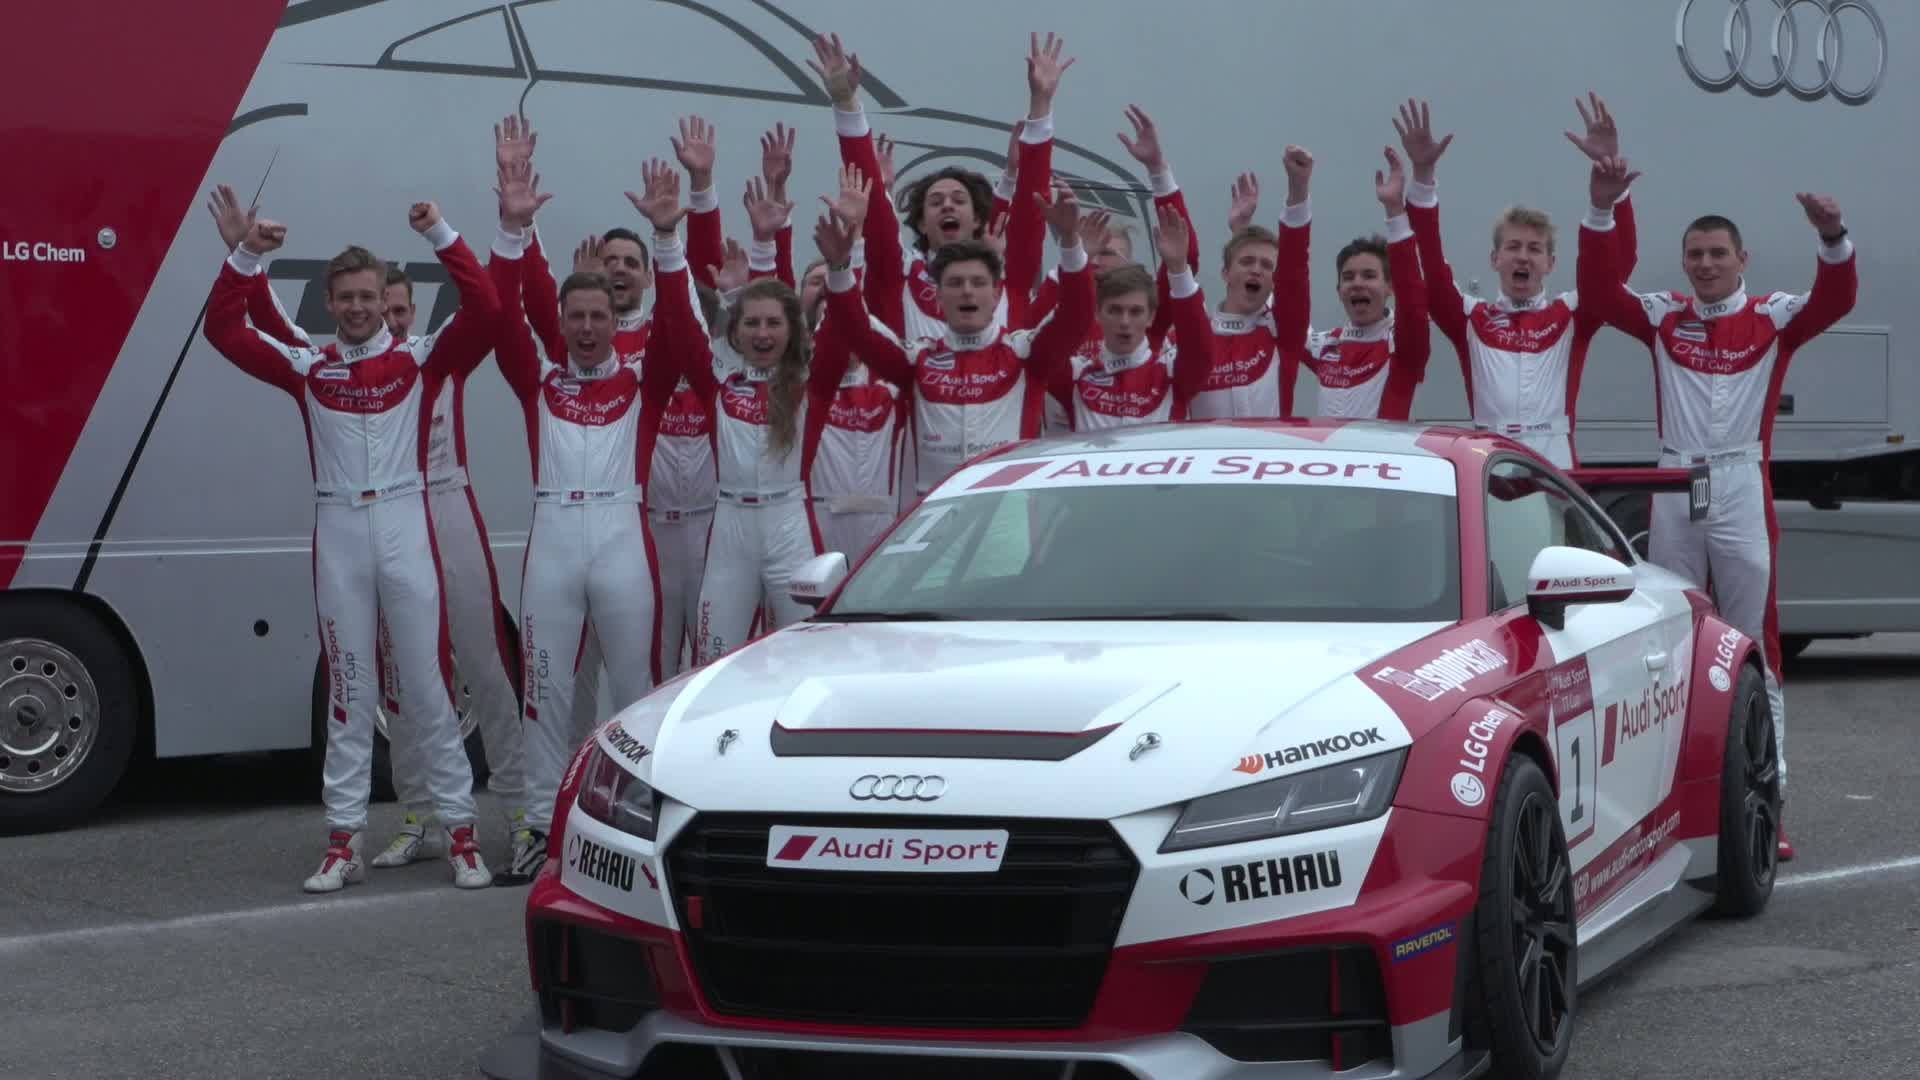 60 Seconds of Audi Sport 4/2016 - Audi Sport TT Cup, finaler Test